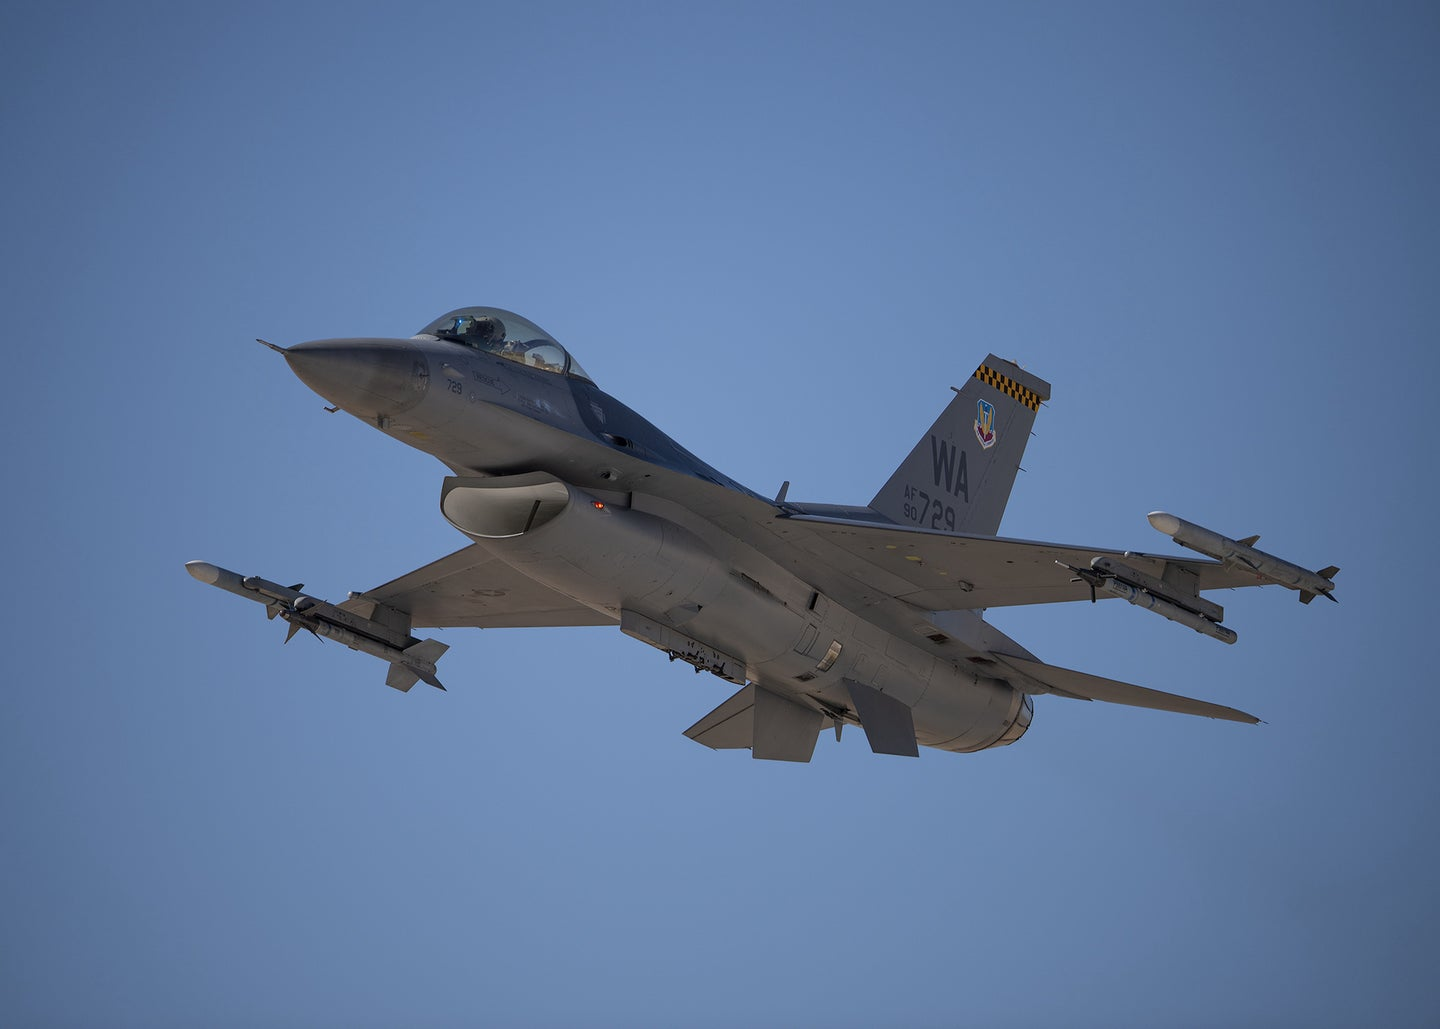 A fighter jet takes off from an Air Force base in Nevada.